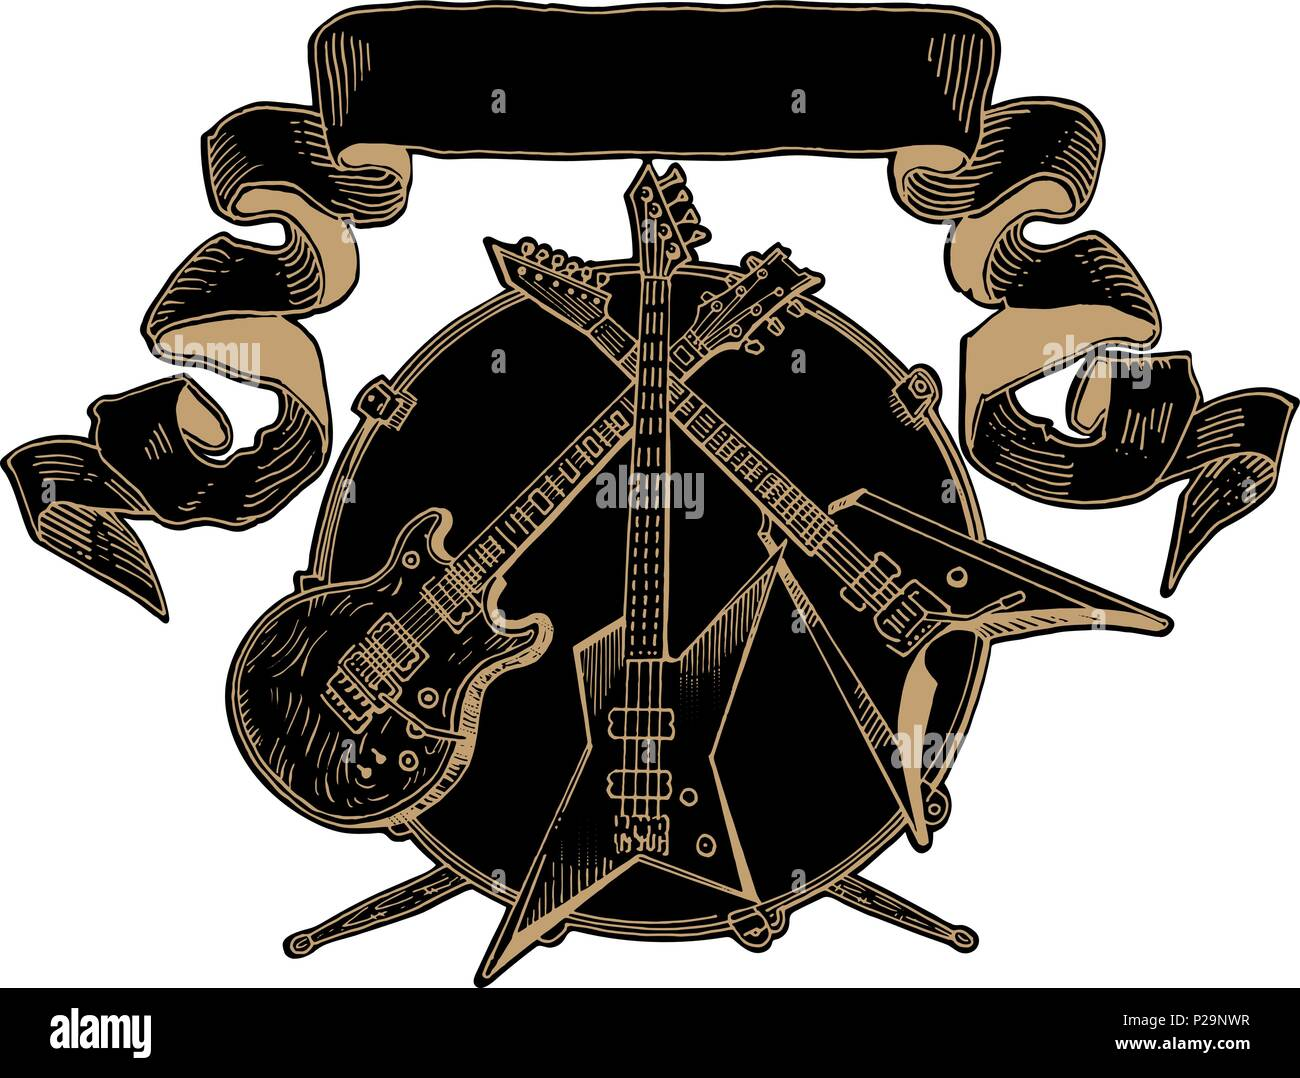 On Heavy Metal Heavy Metal Coat Of Arms Electric Guitar Bass Drums Line Art On